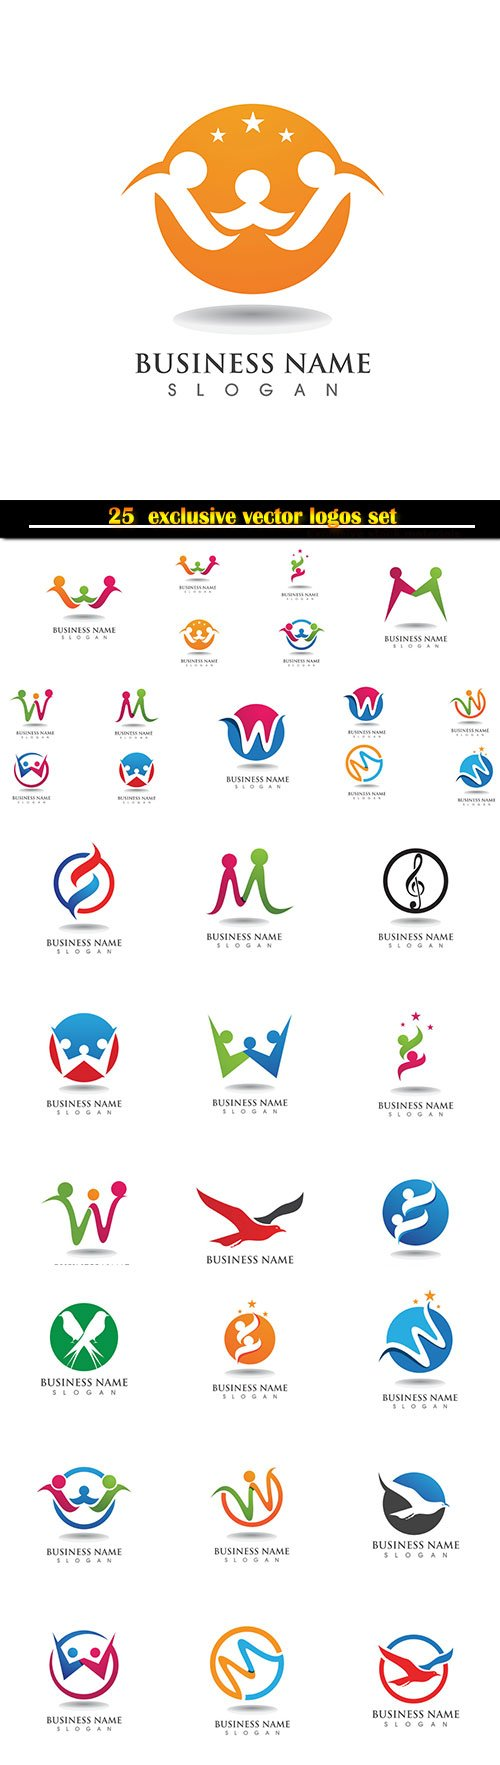 Logo business vector illustration template # 122